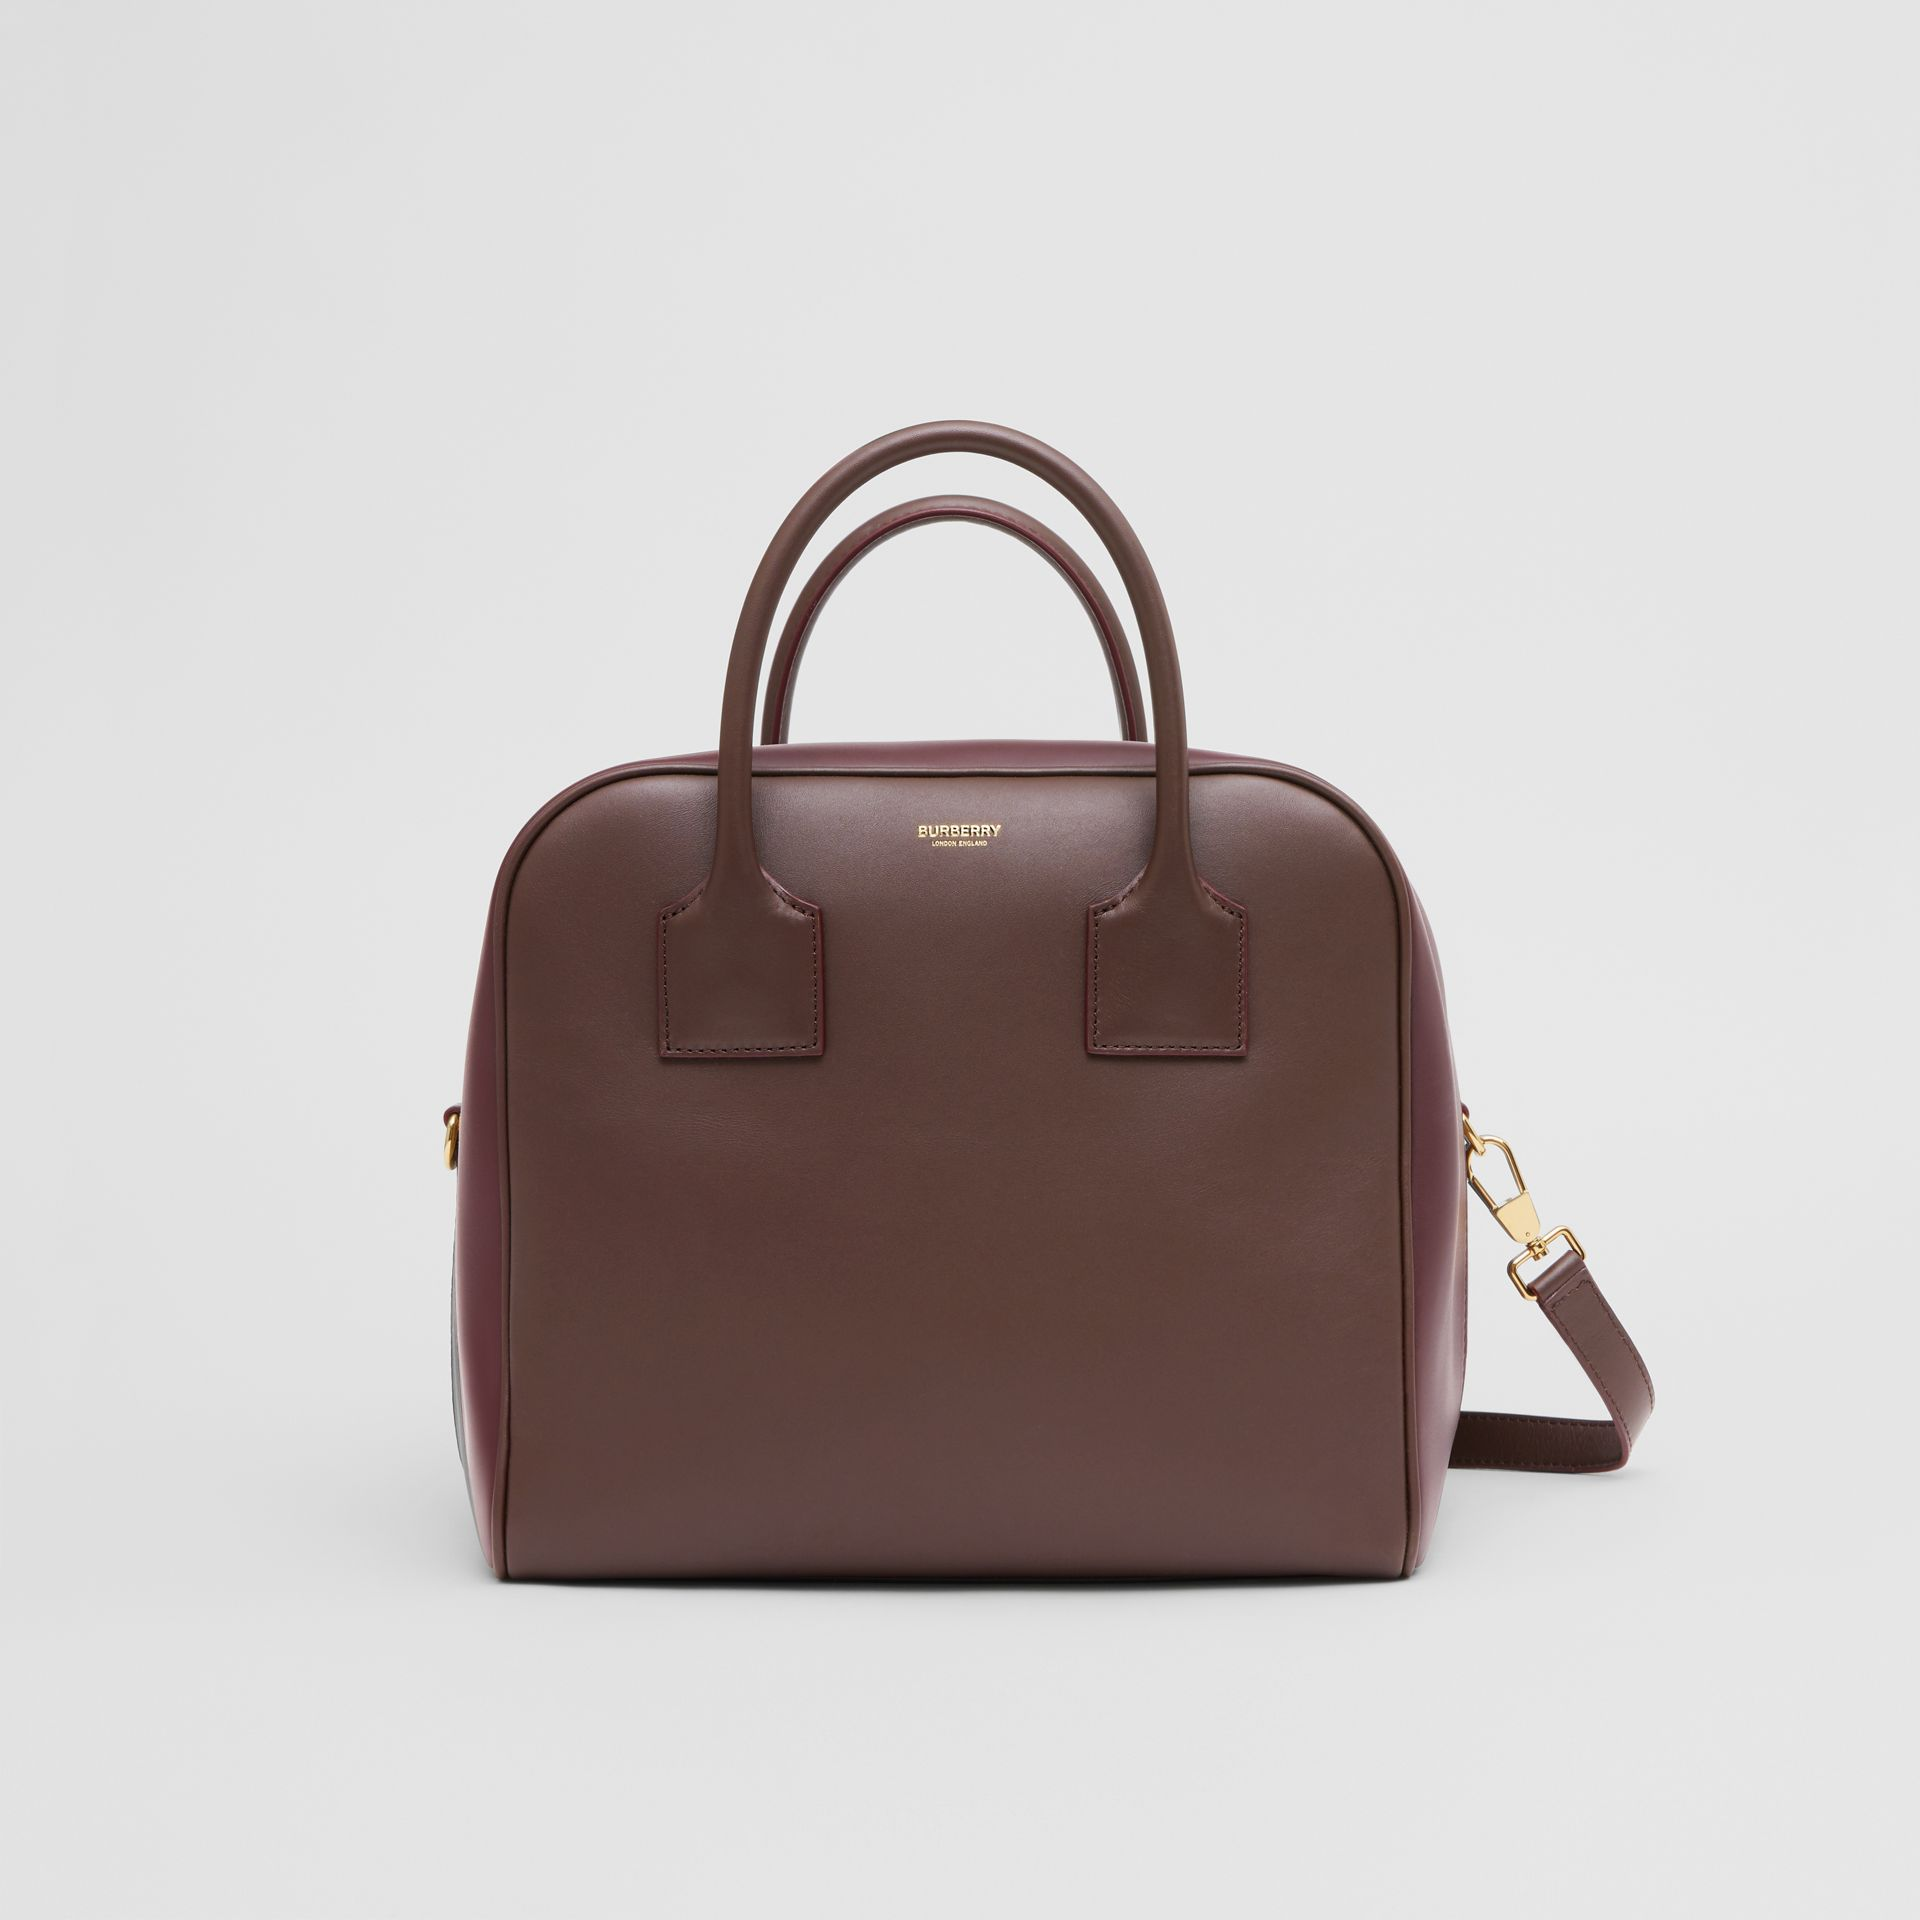 Medium Leather and Suede Cube Bag in Mahogany - Women | Burberry - gallery image 0